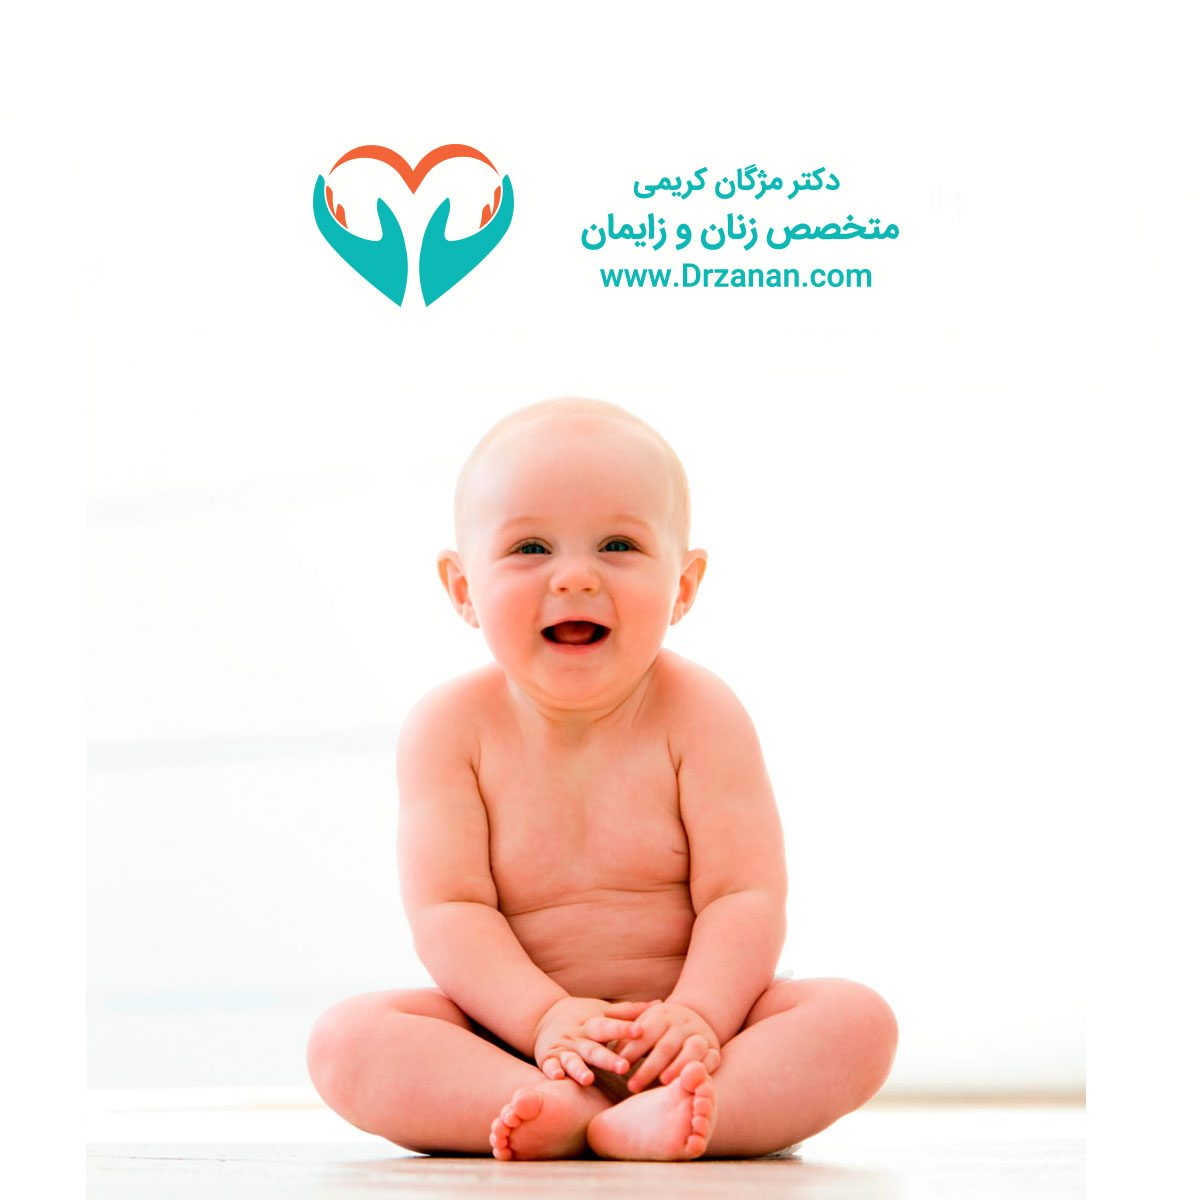 misconceptions-about-breastfeeding-1200x1200.jpg